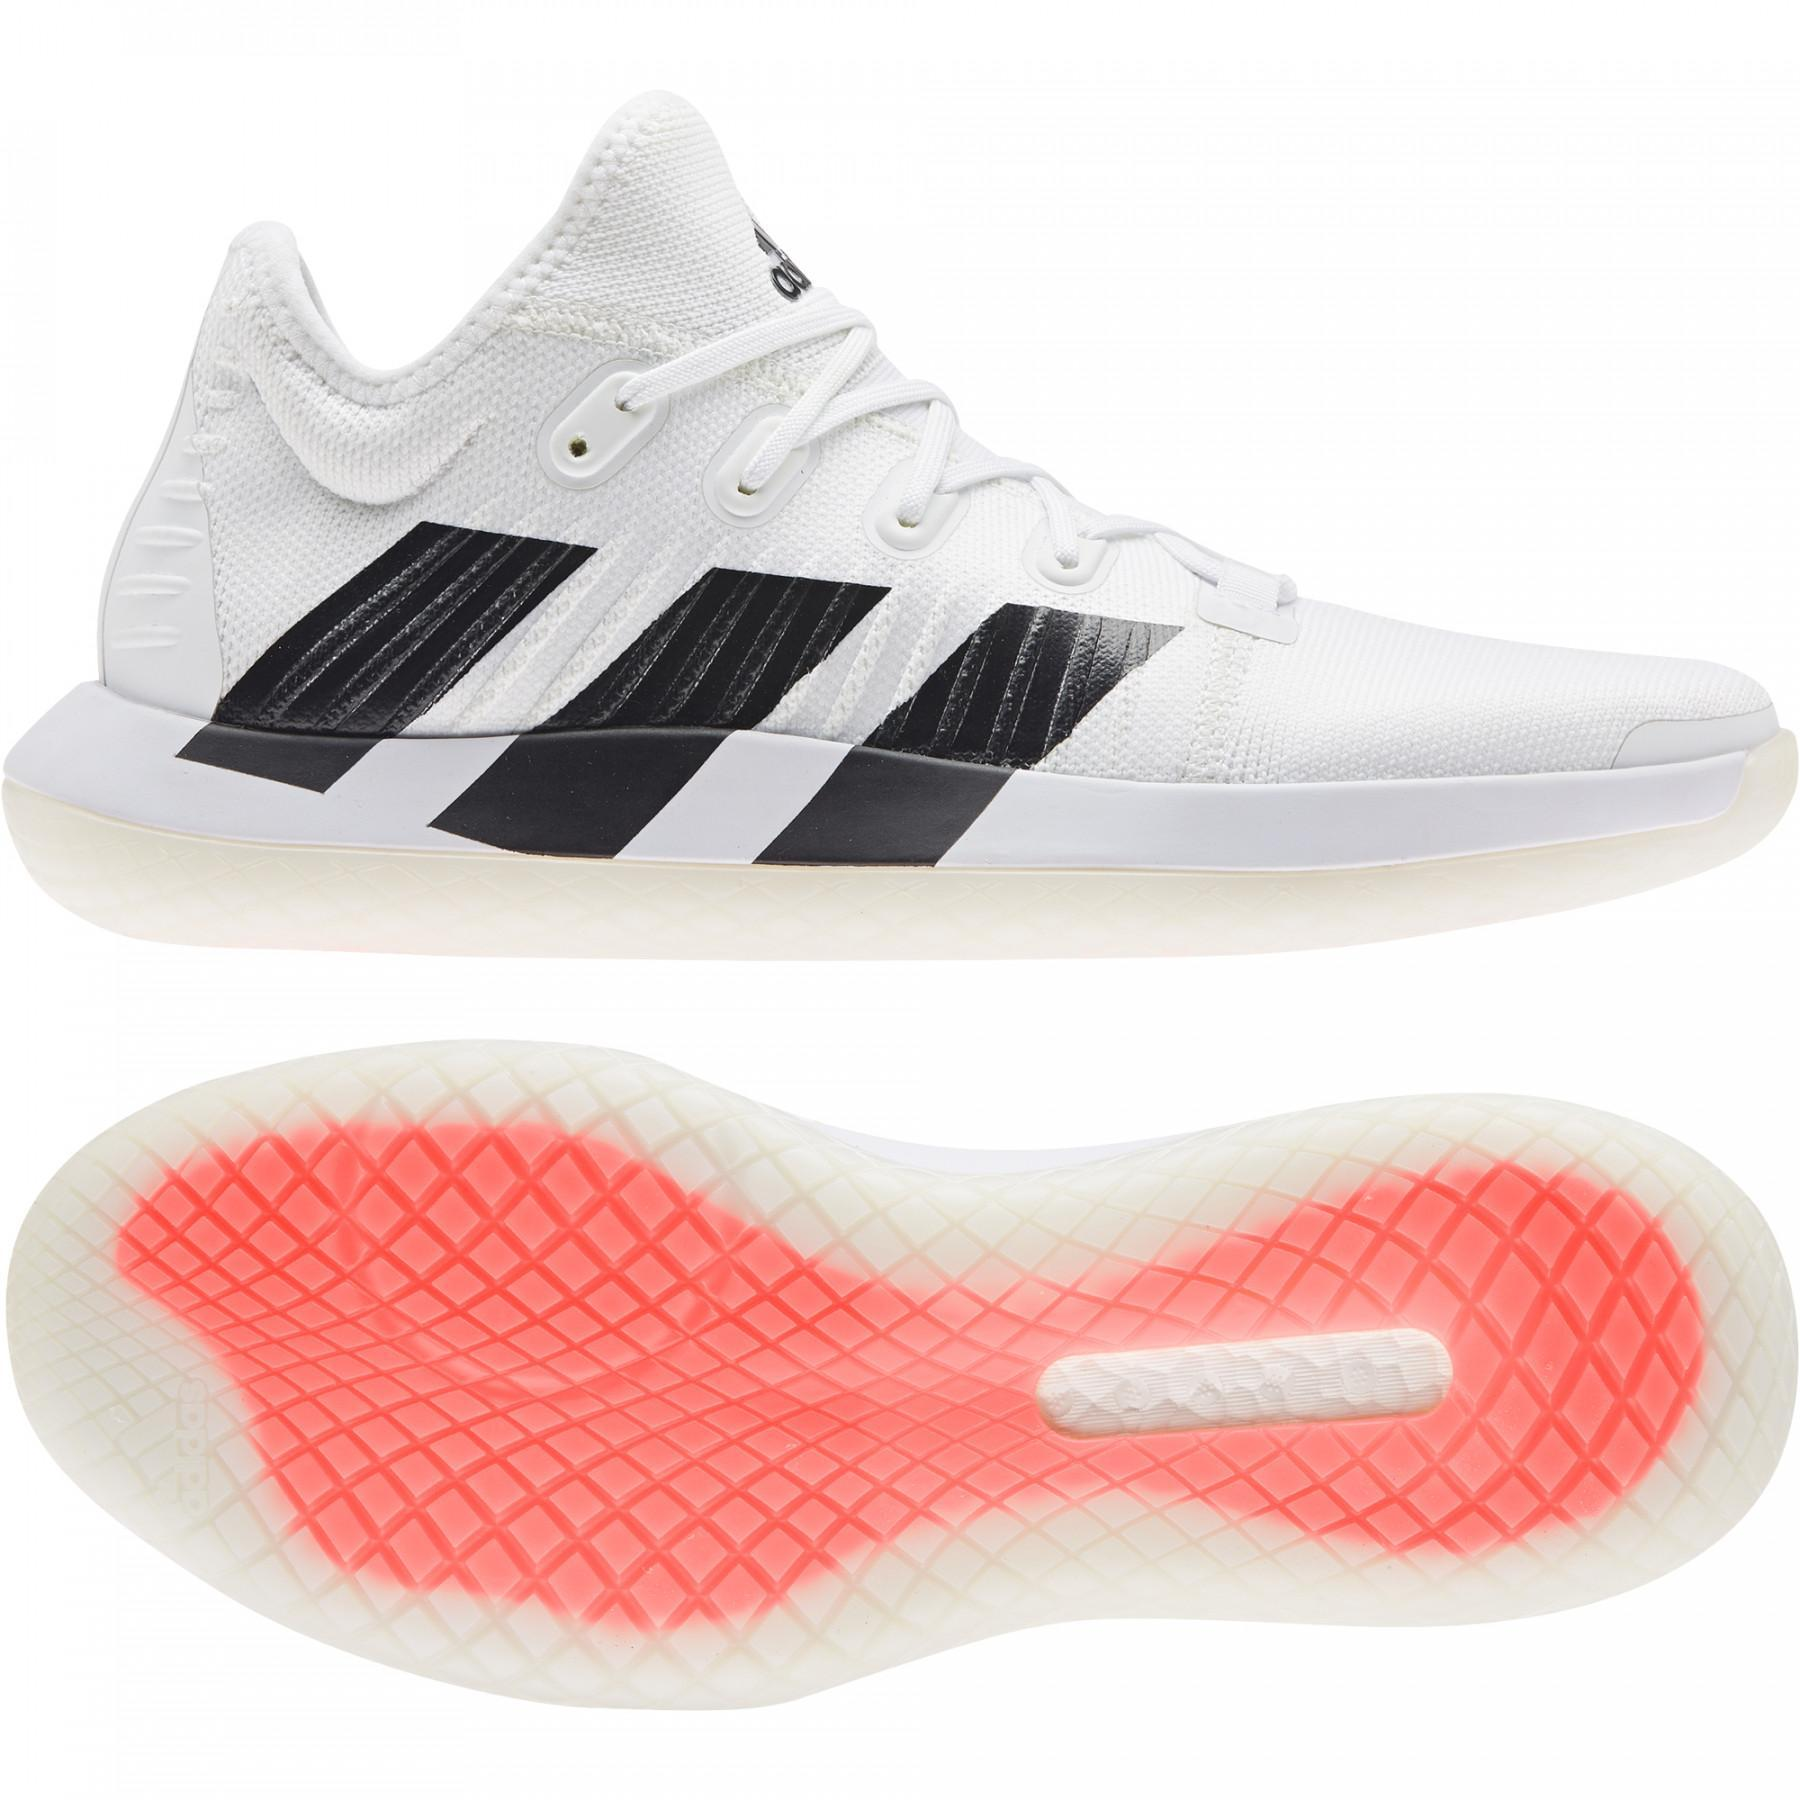 adidas stabil shoes